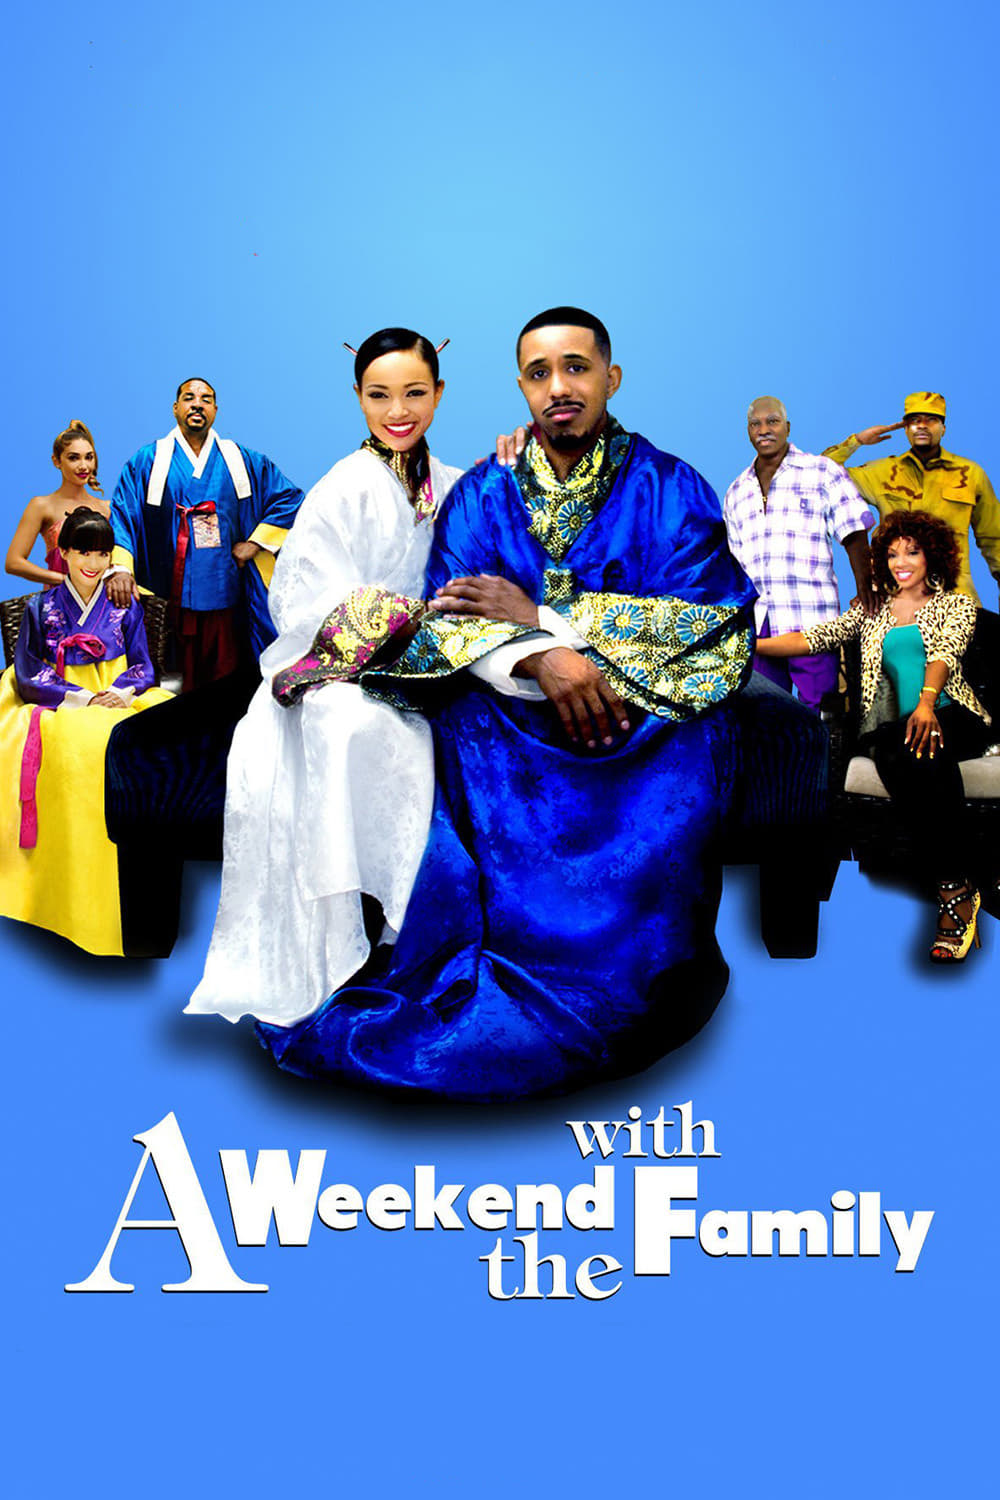 A Weekend with the Family on FREECABLE TV